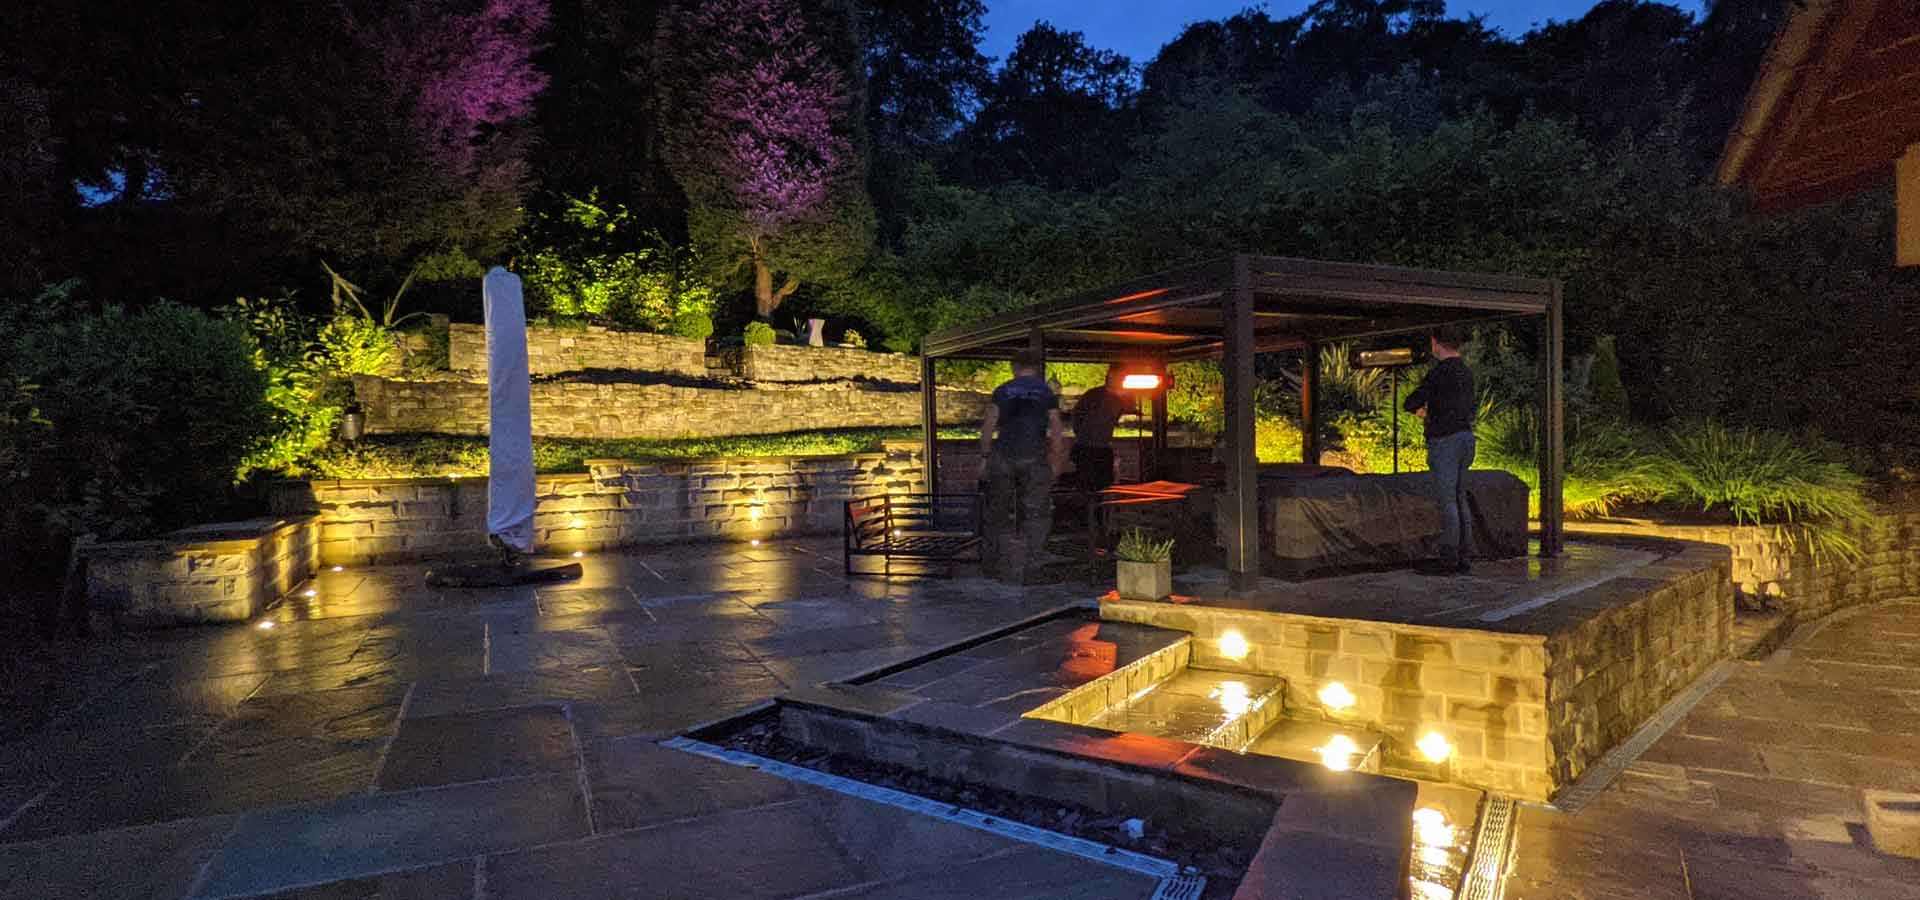 A beautiful back garden in darkness with many areas illuminated with outdoor lighting